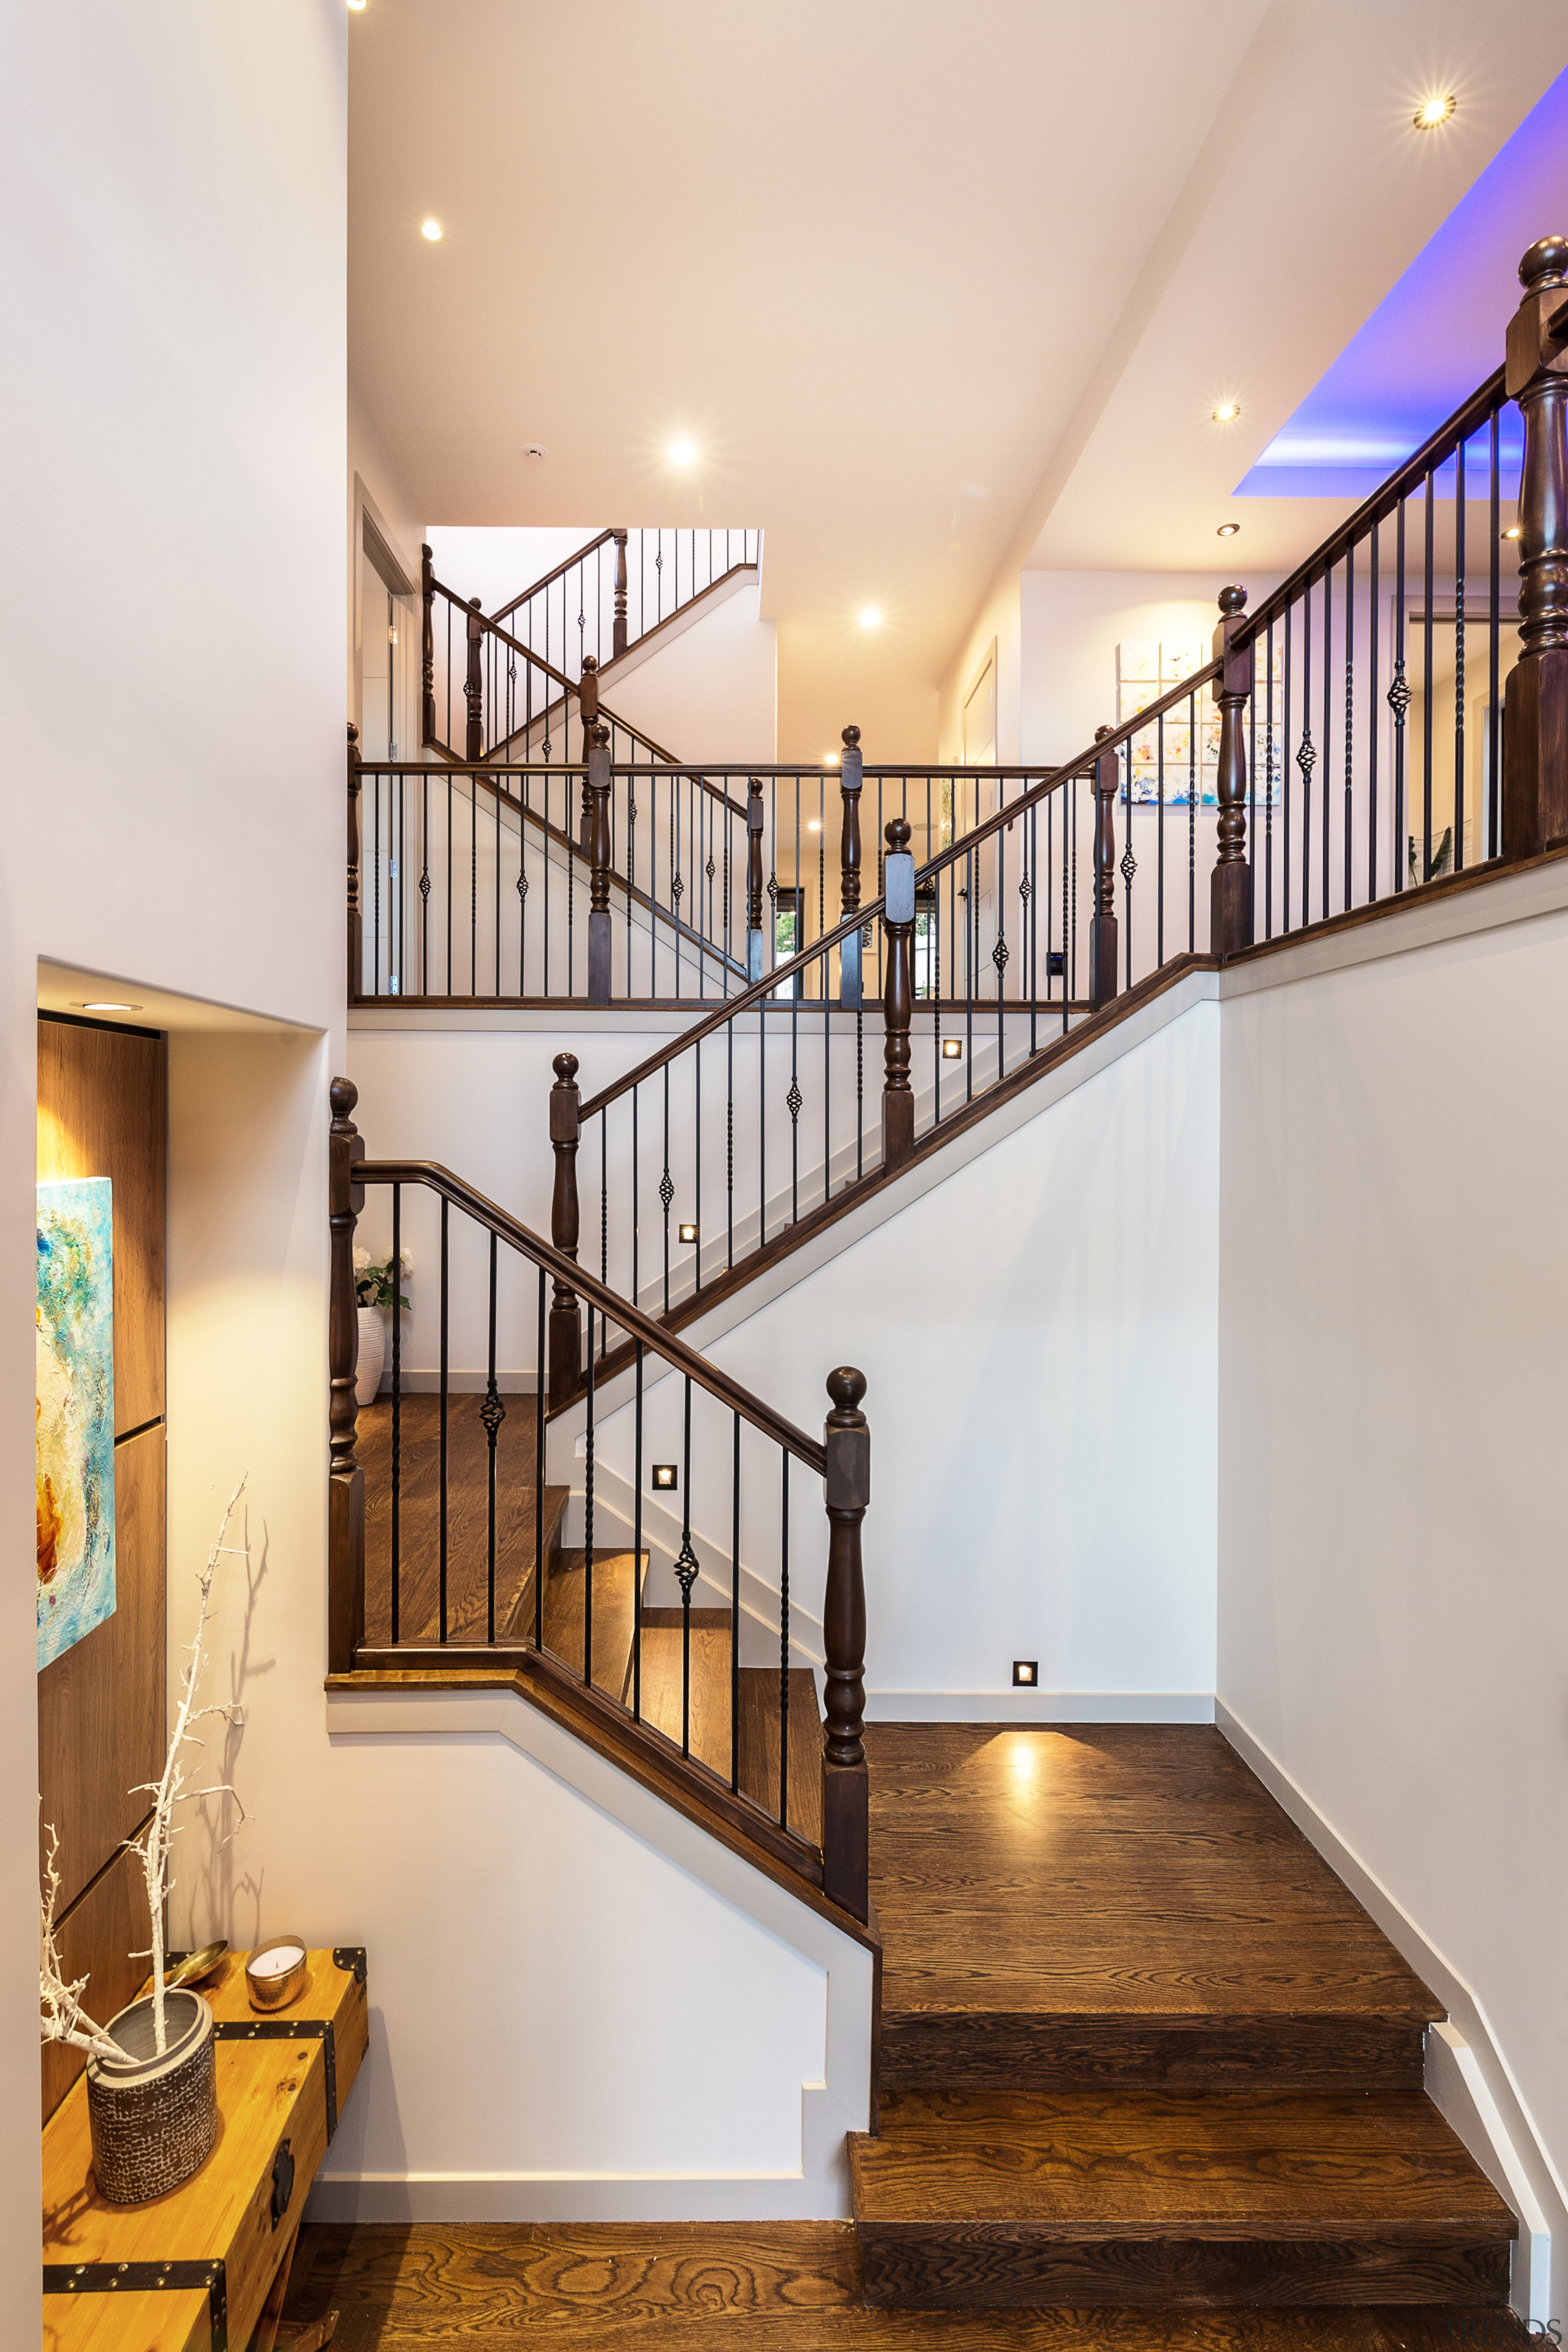 Central stairs in this new home are matched apartment, balustrade, handrail, home, interior design, stairs, Continental Stairs, baluster, Chancellor Constrtuction